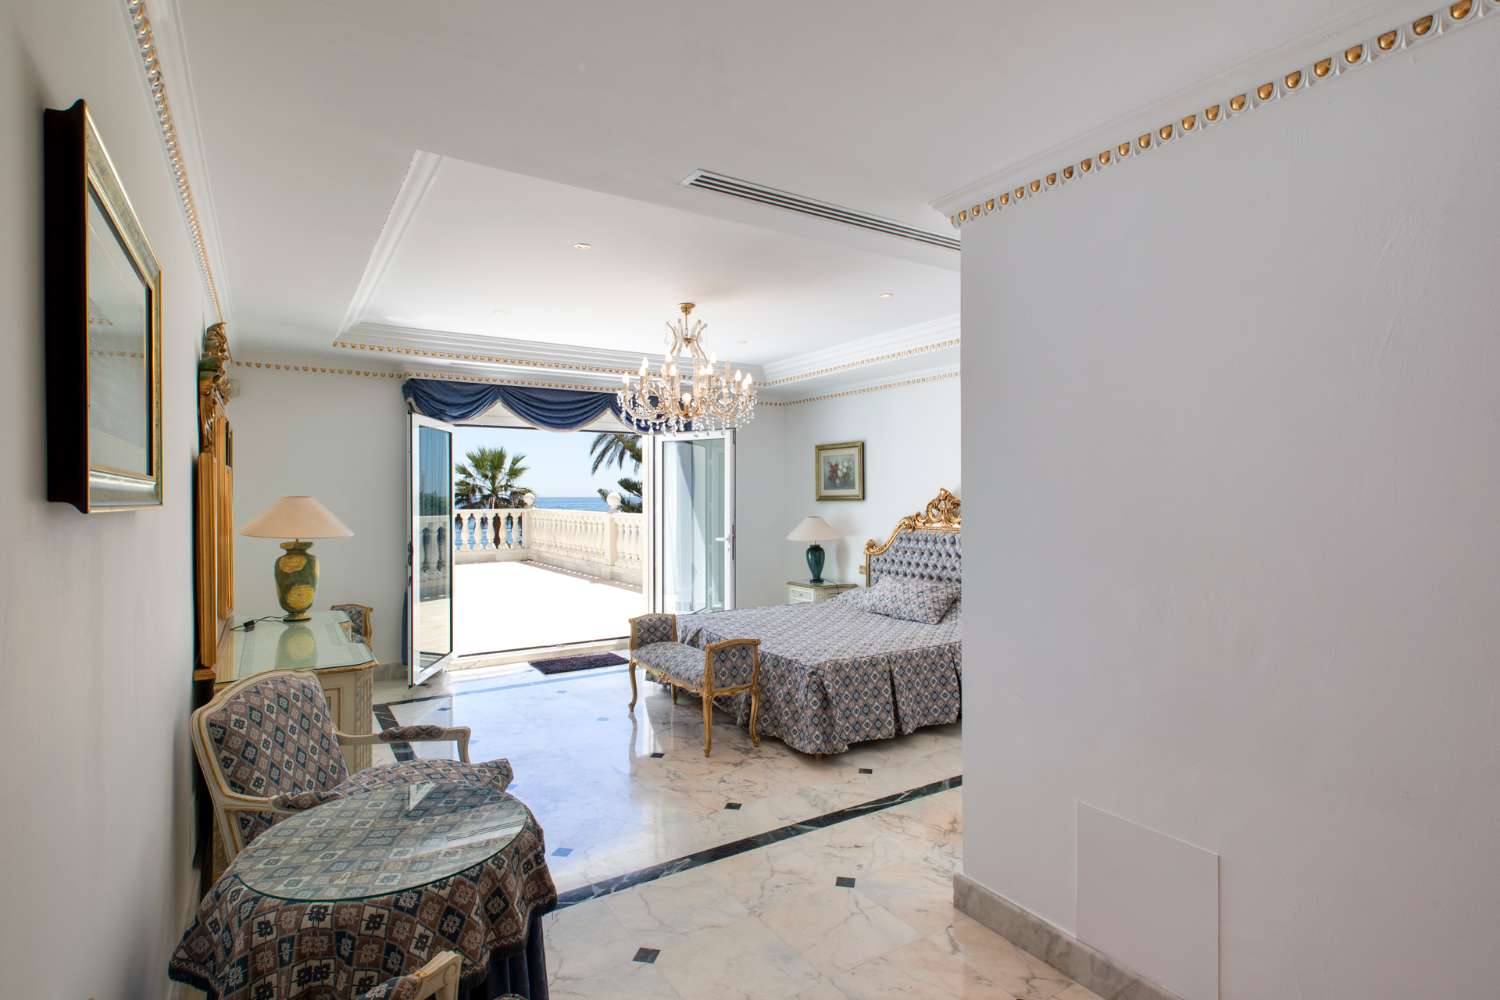 Luxury stay perfect to relax with unobstructed sea views. Beachfront vacation home with internet and entertainment room with disco.